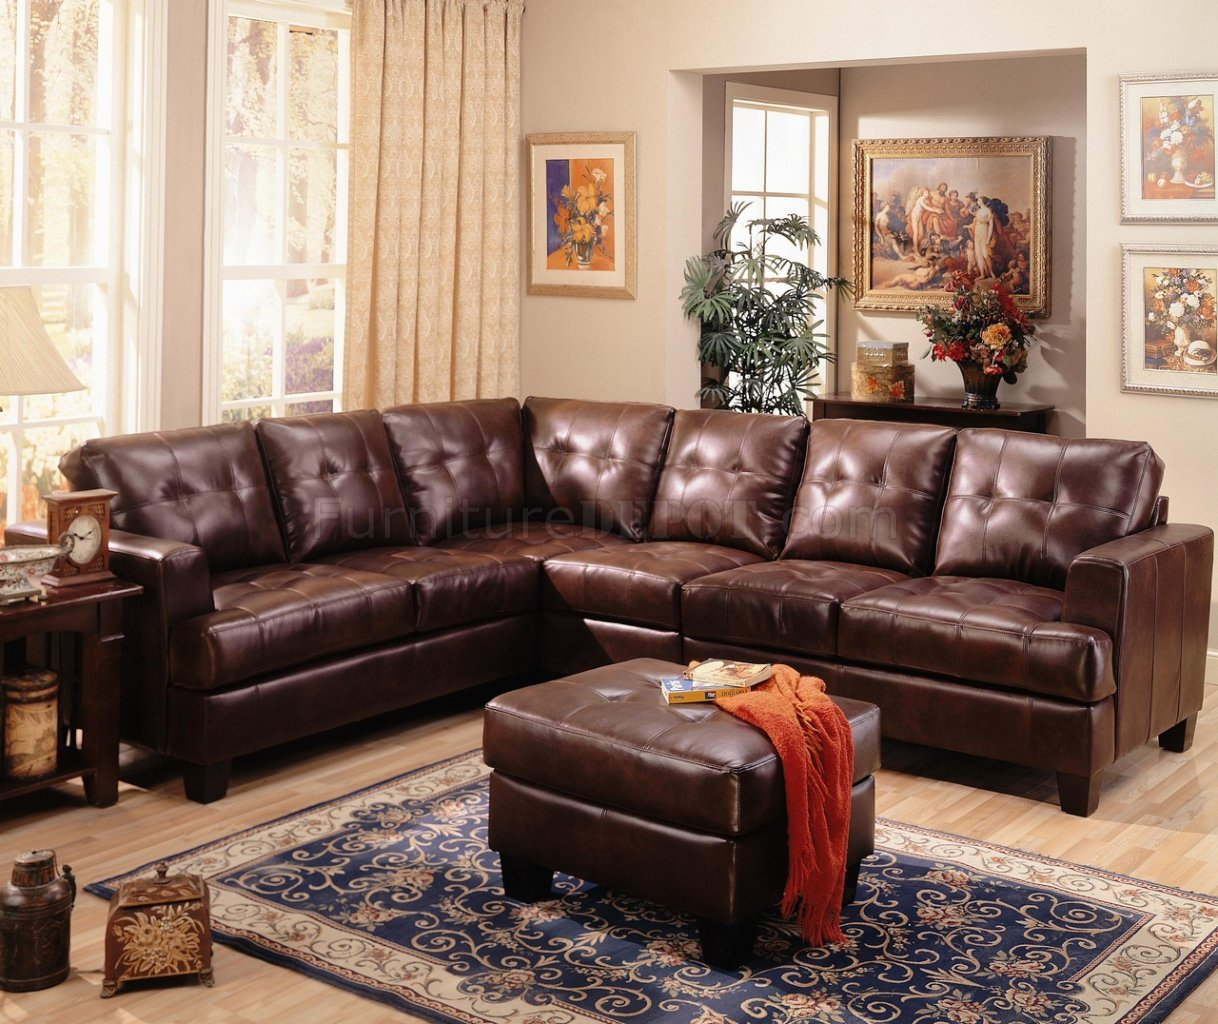 Samuel Modern Leather Sectional Sofa 500911 Brown